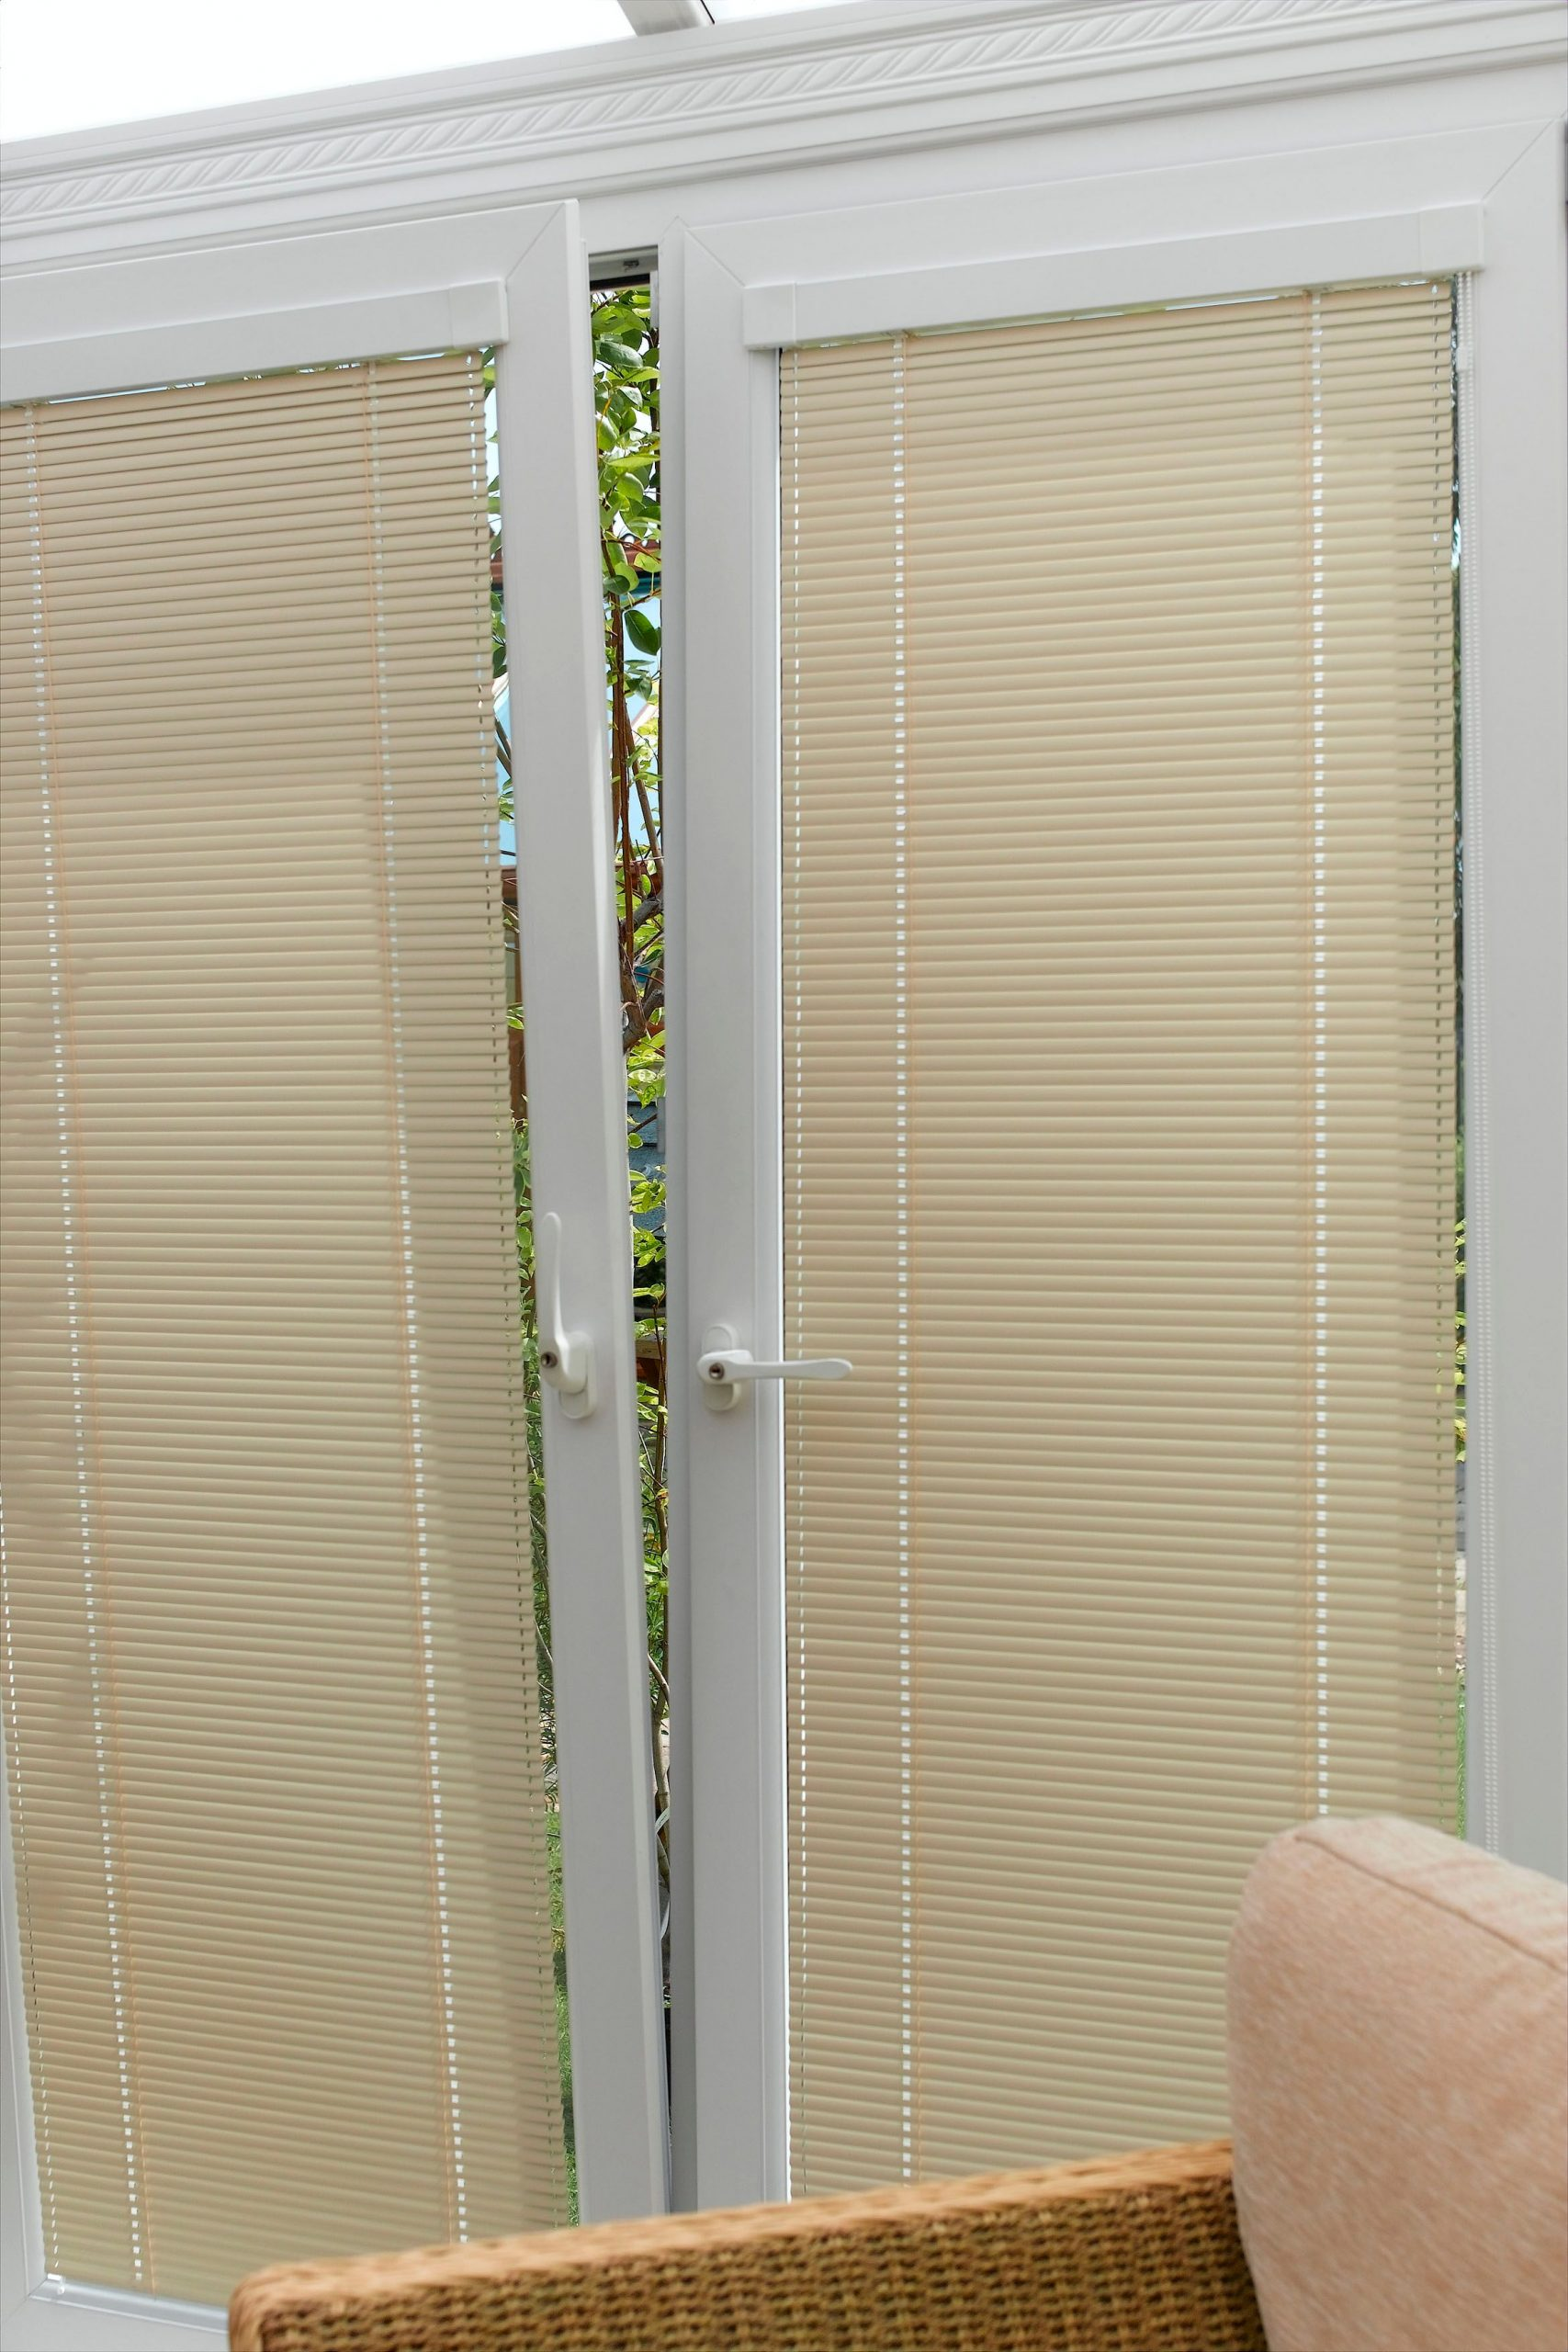 Blinds for conservatory doors